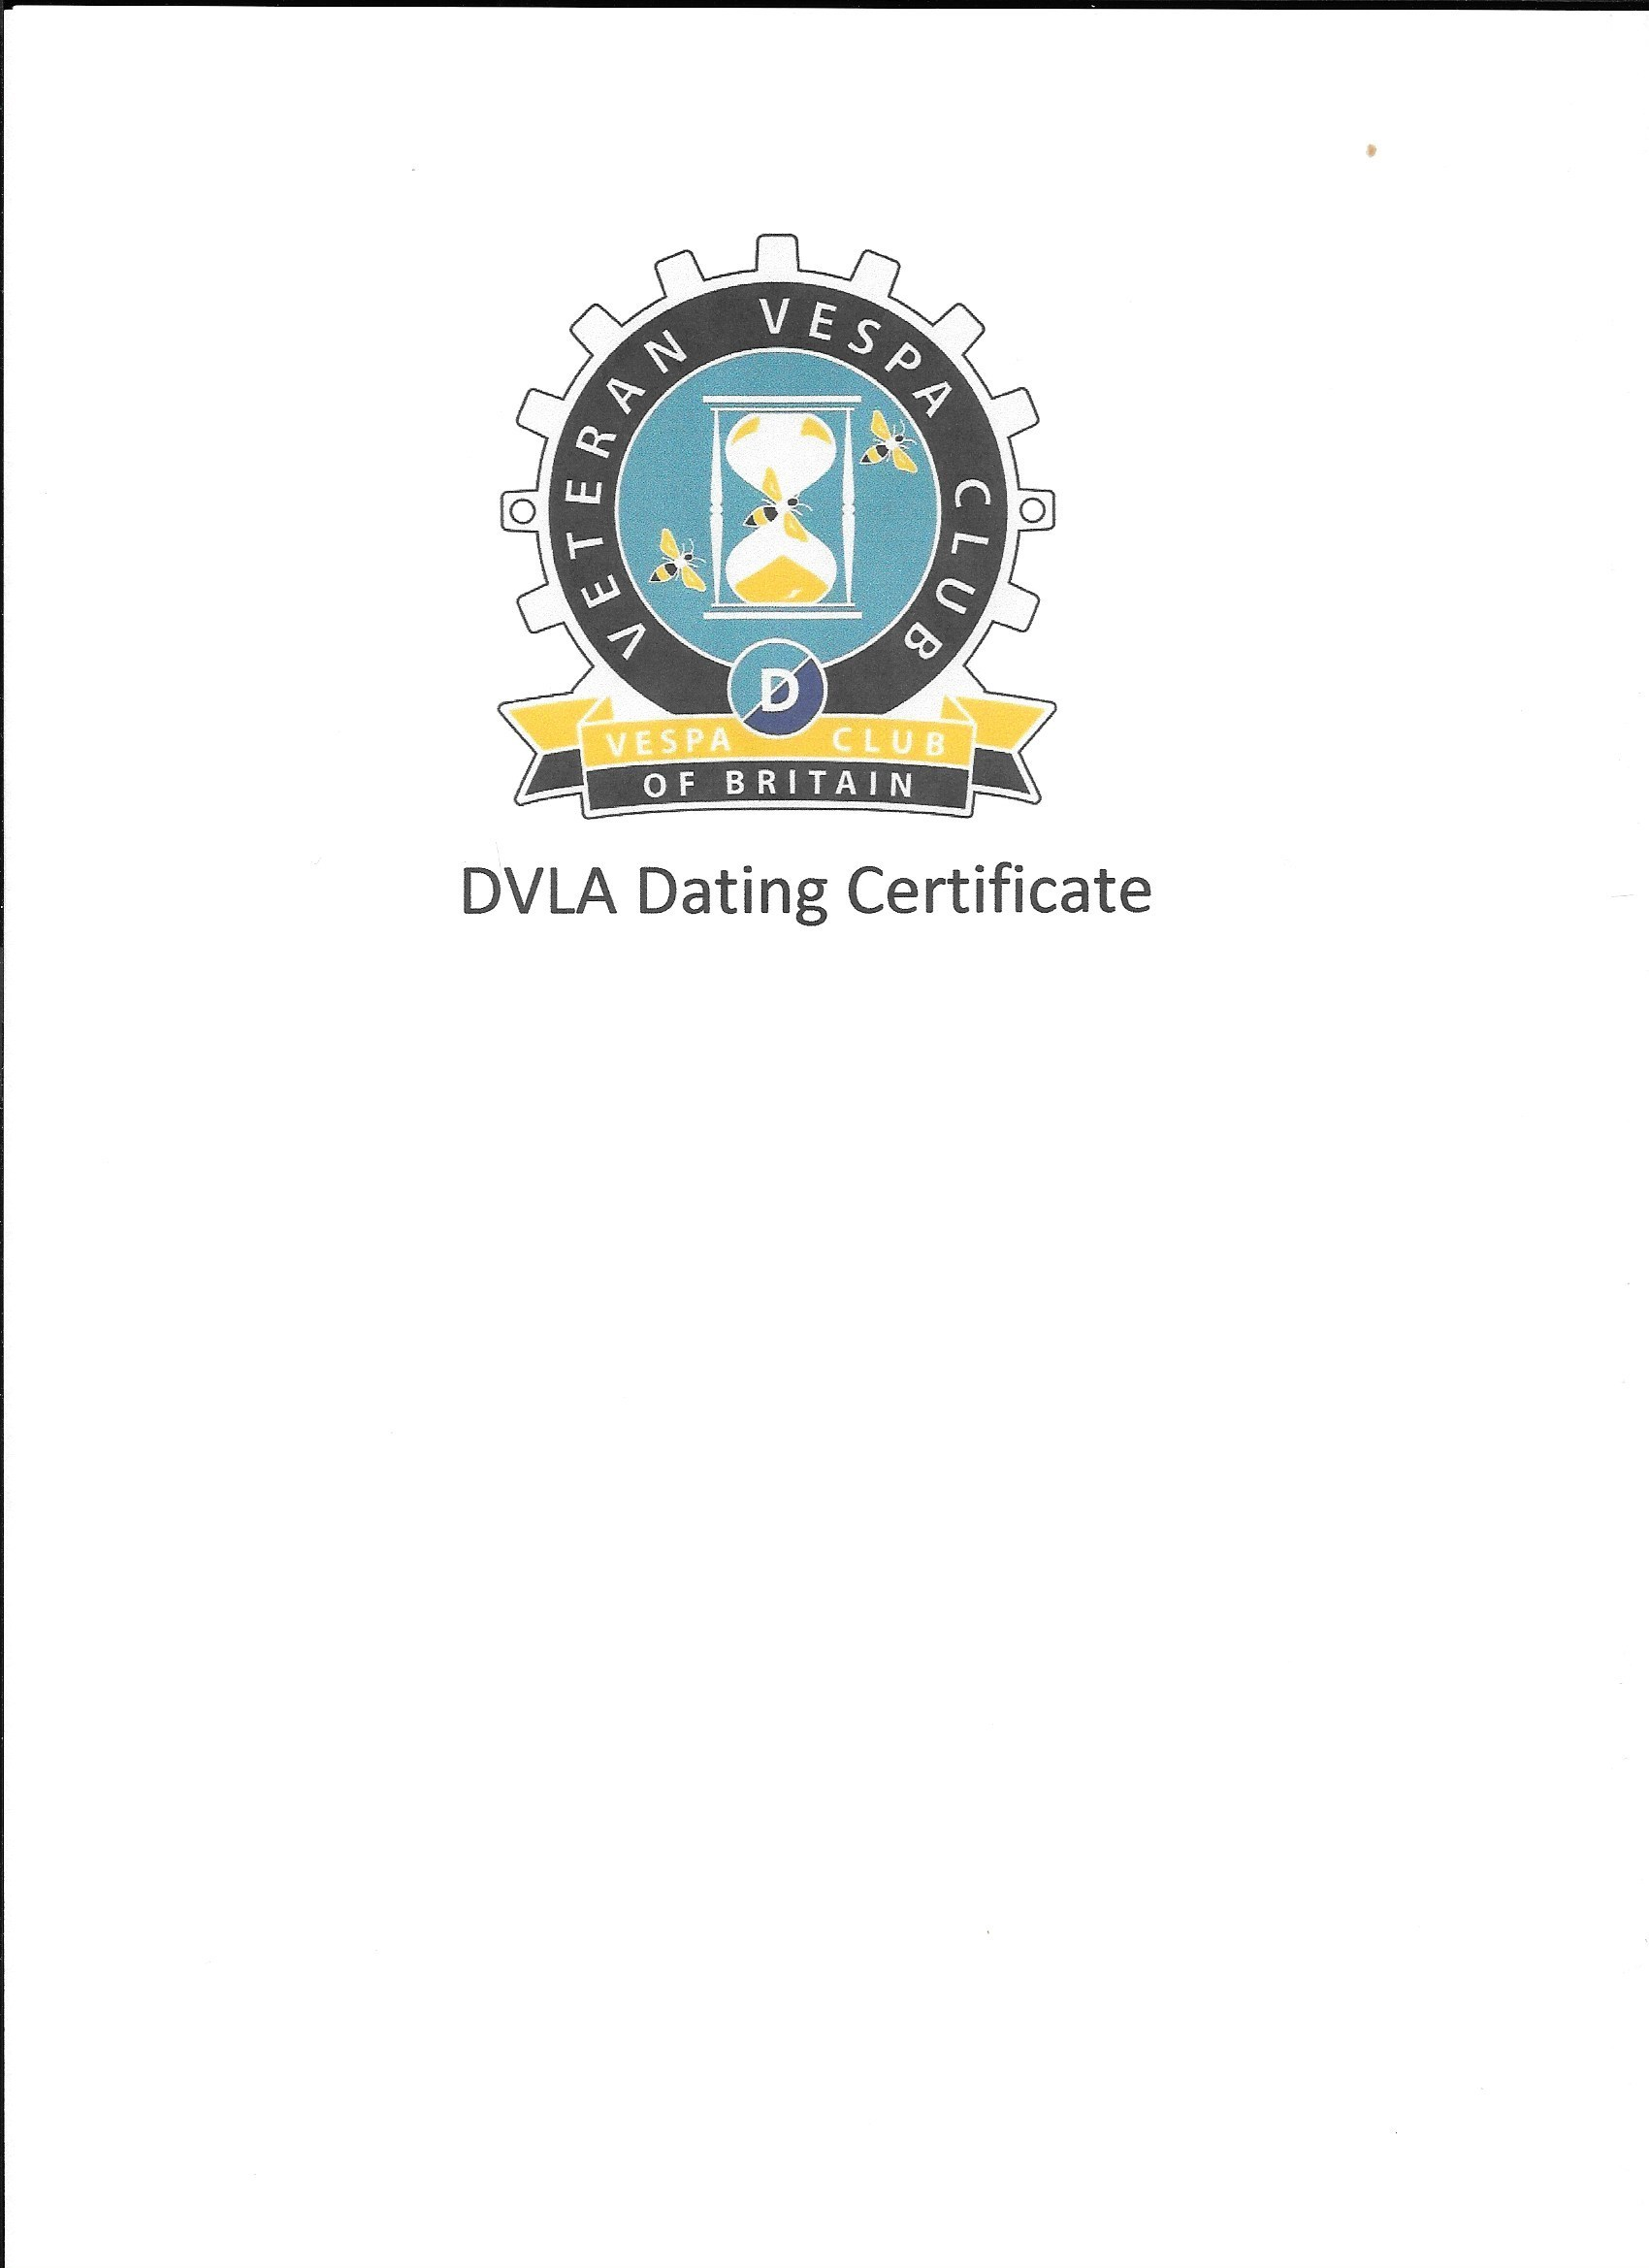 VVC Dating Certificate 00020